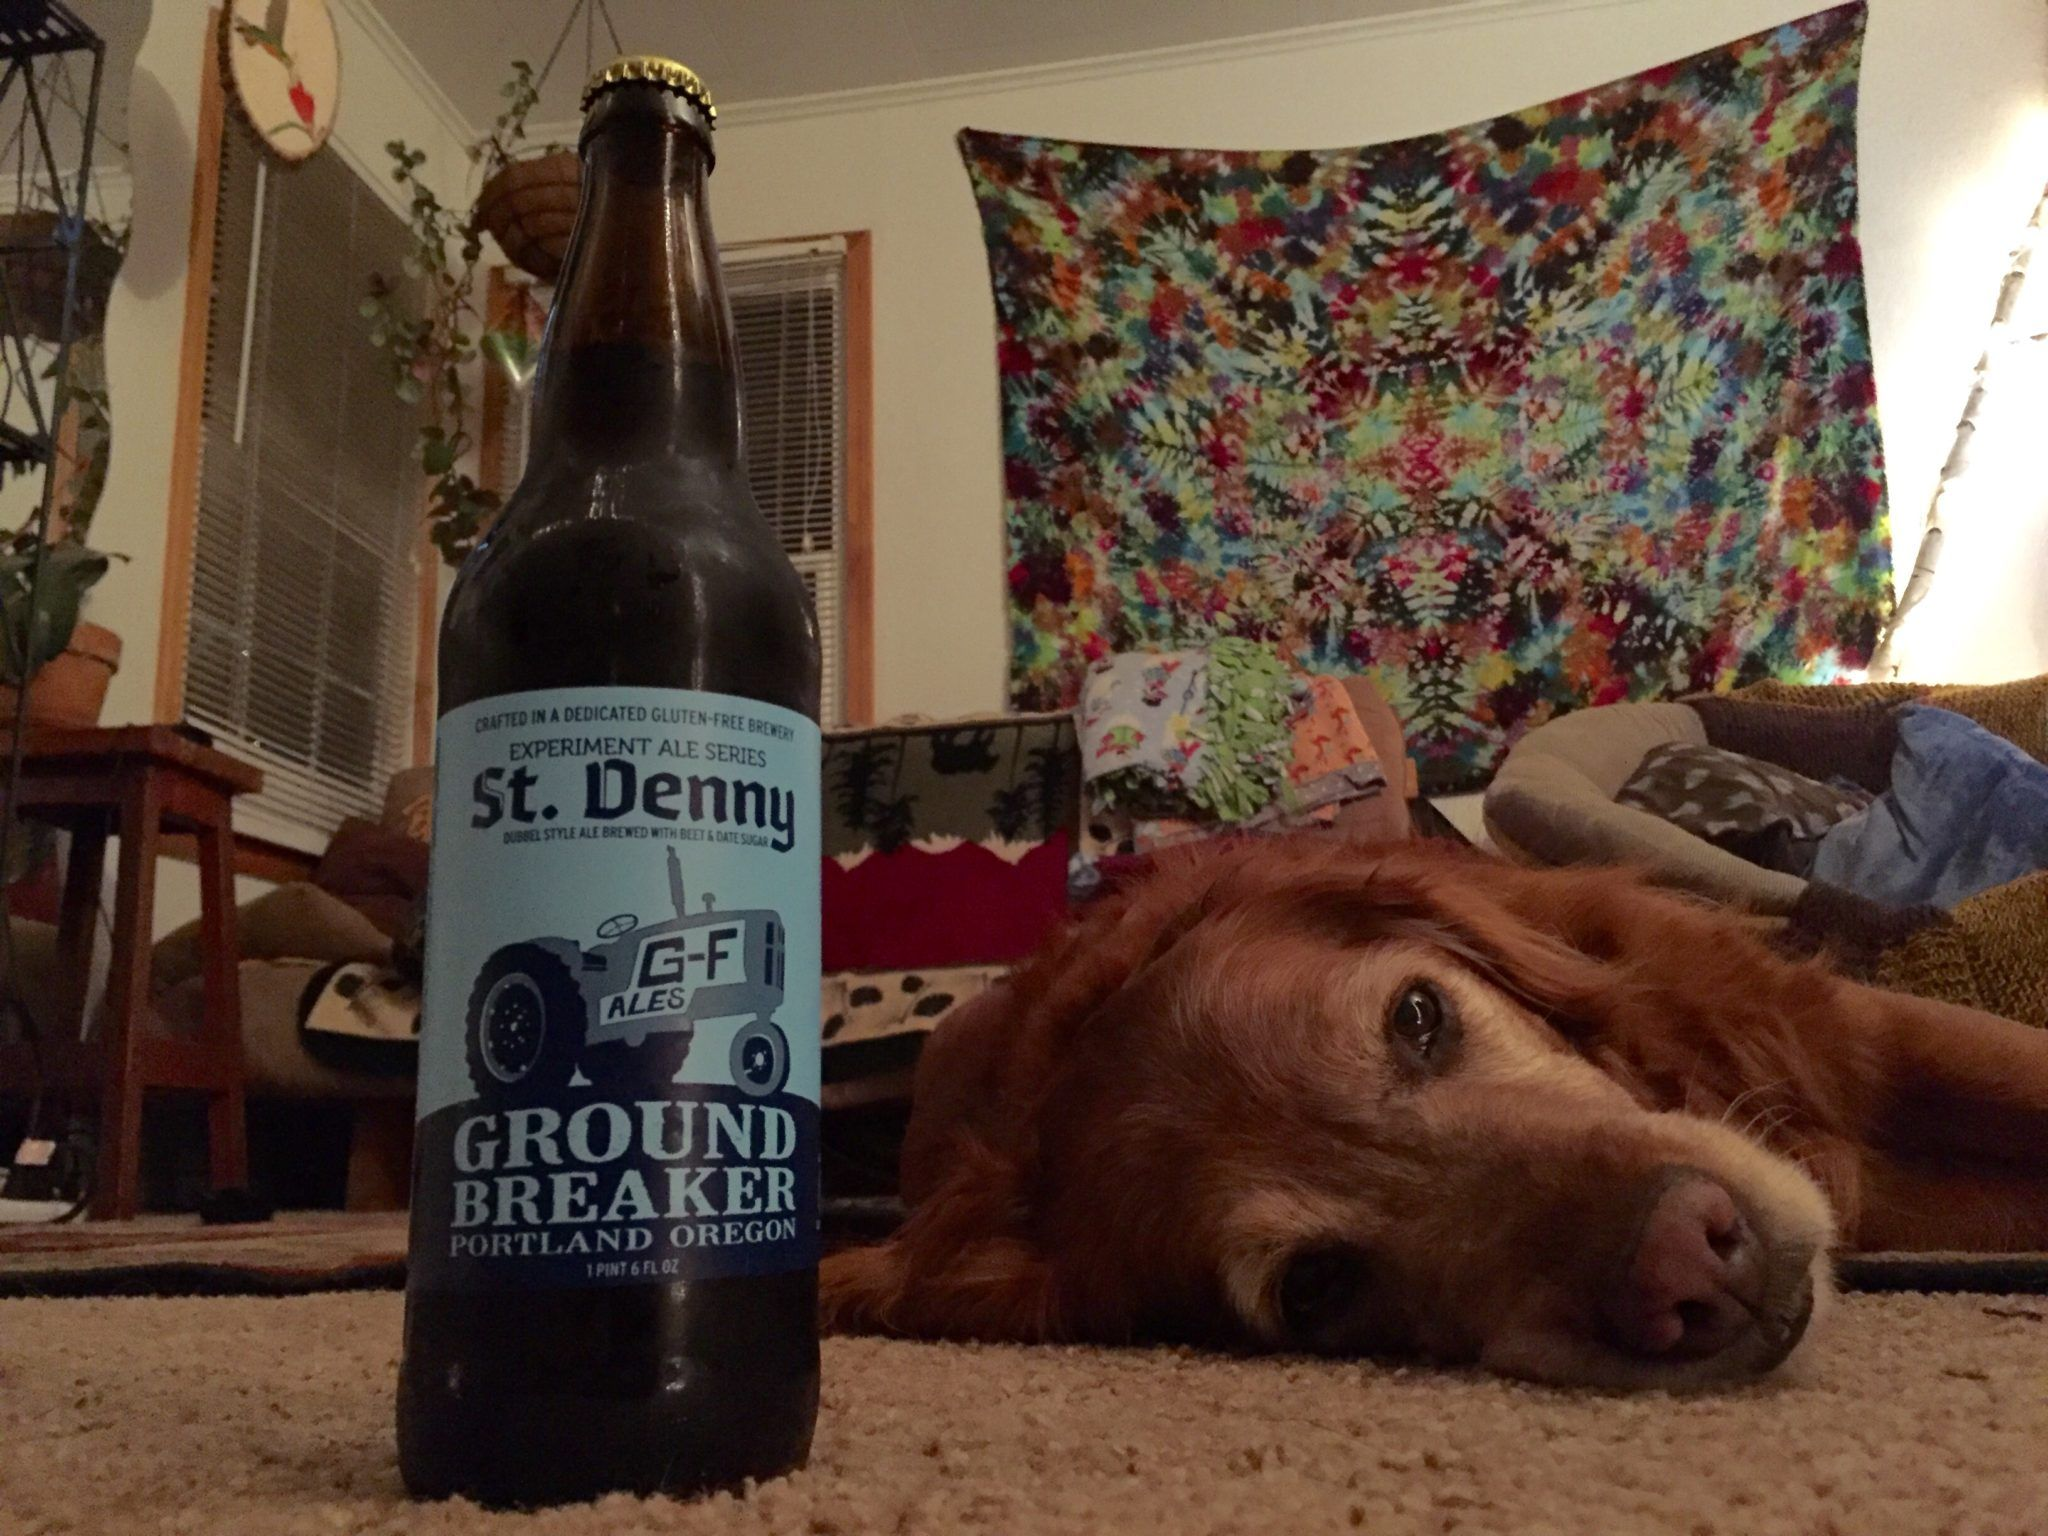 ground breaker dubbel style ale ground breaker brewing company gluten free beer review st denny's belgian ale beet date sugar seasonal brew